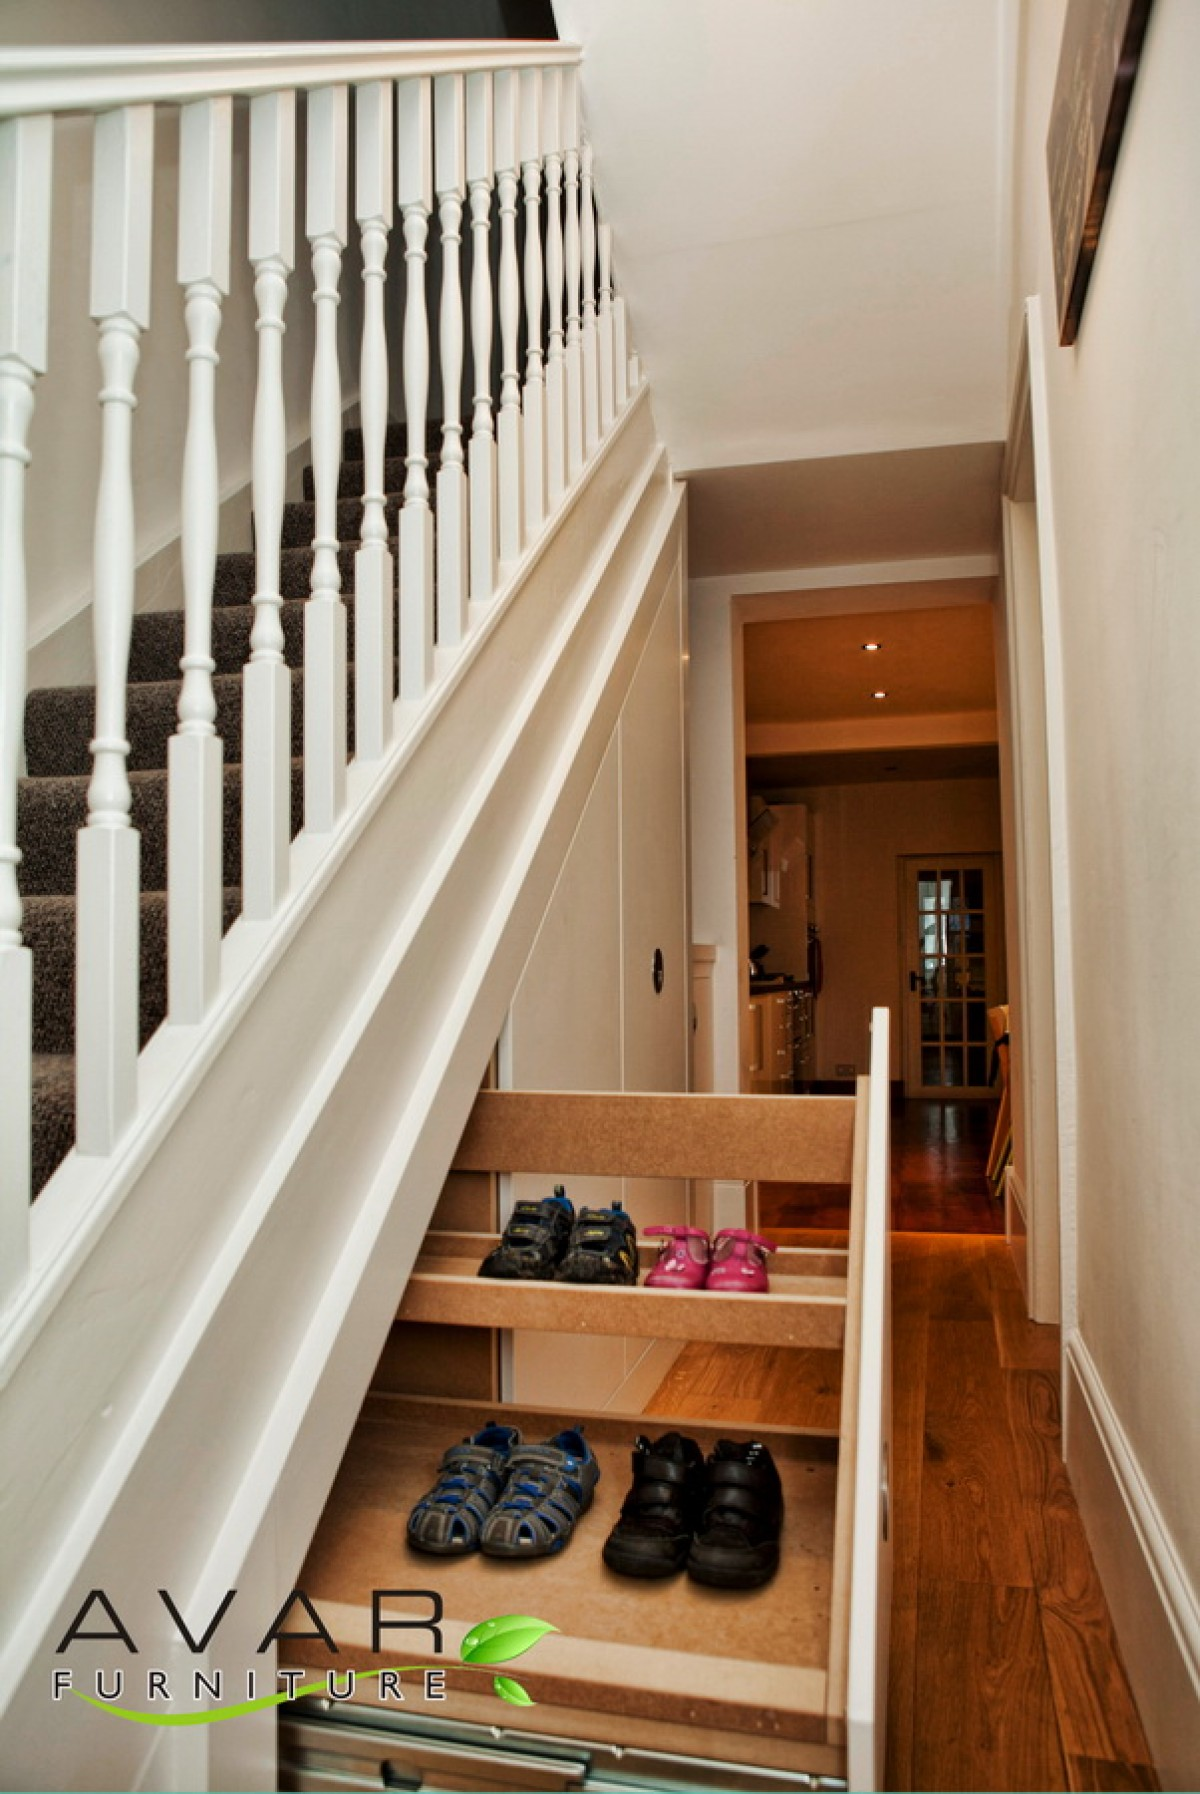 ƸӜƷ Under Stairs Storage Ideas Gallery 10 North London